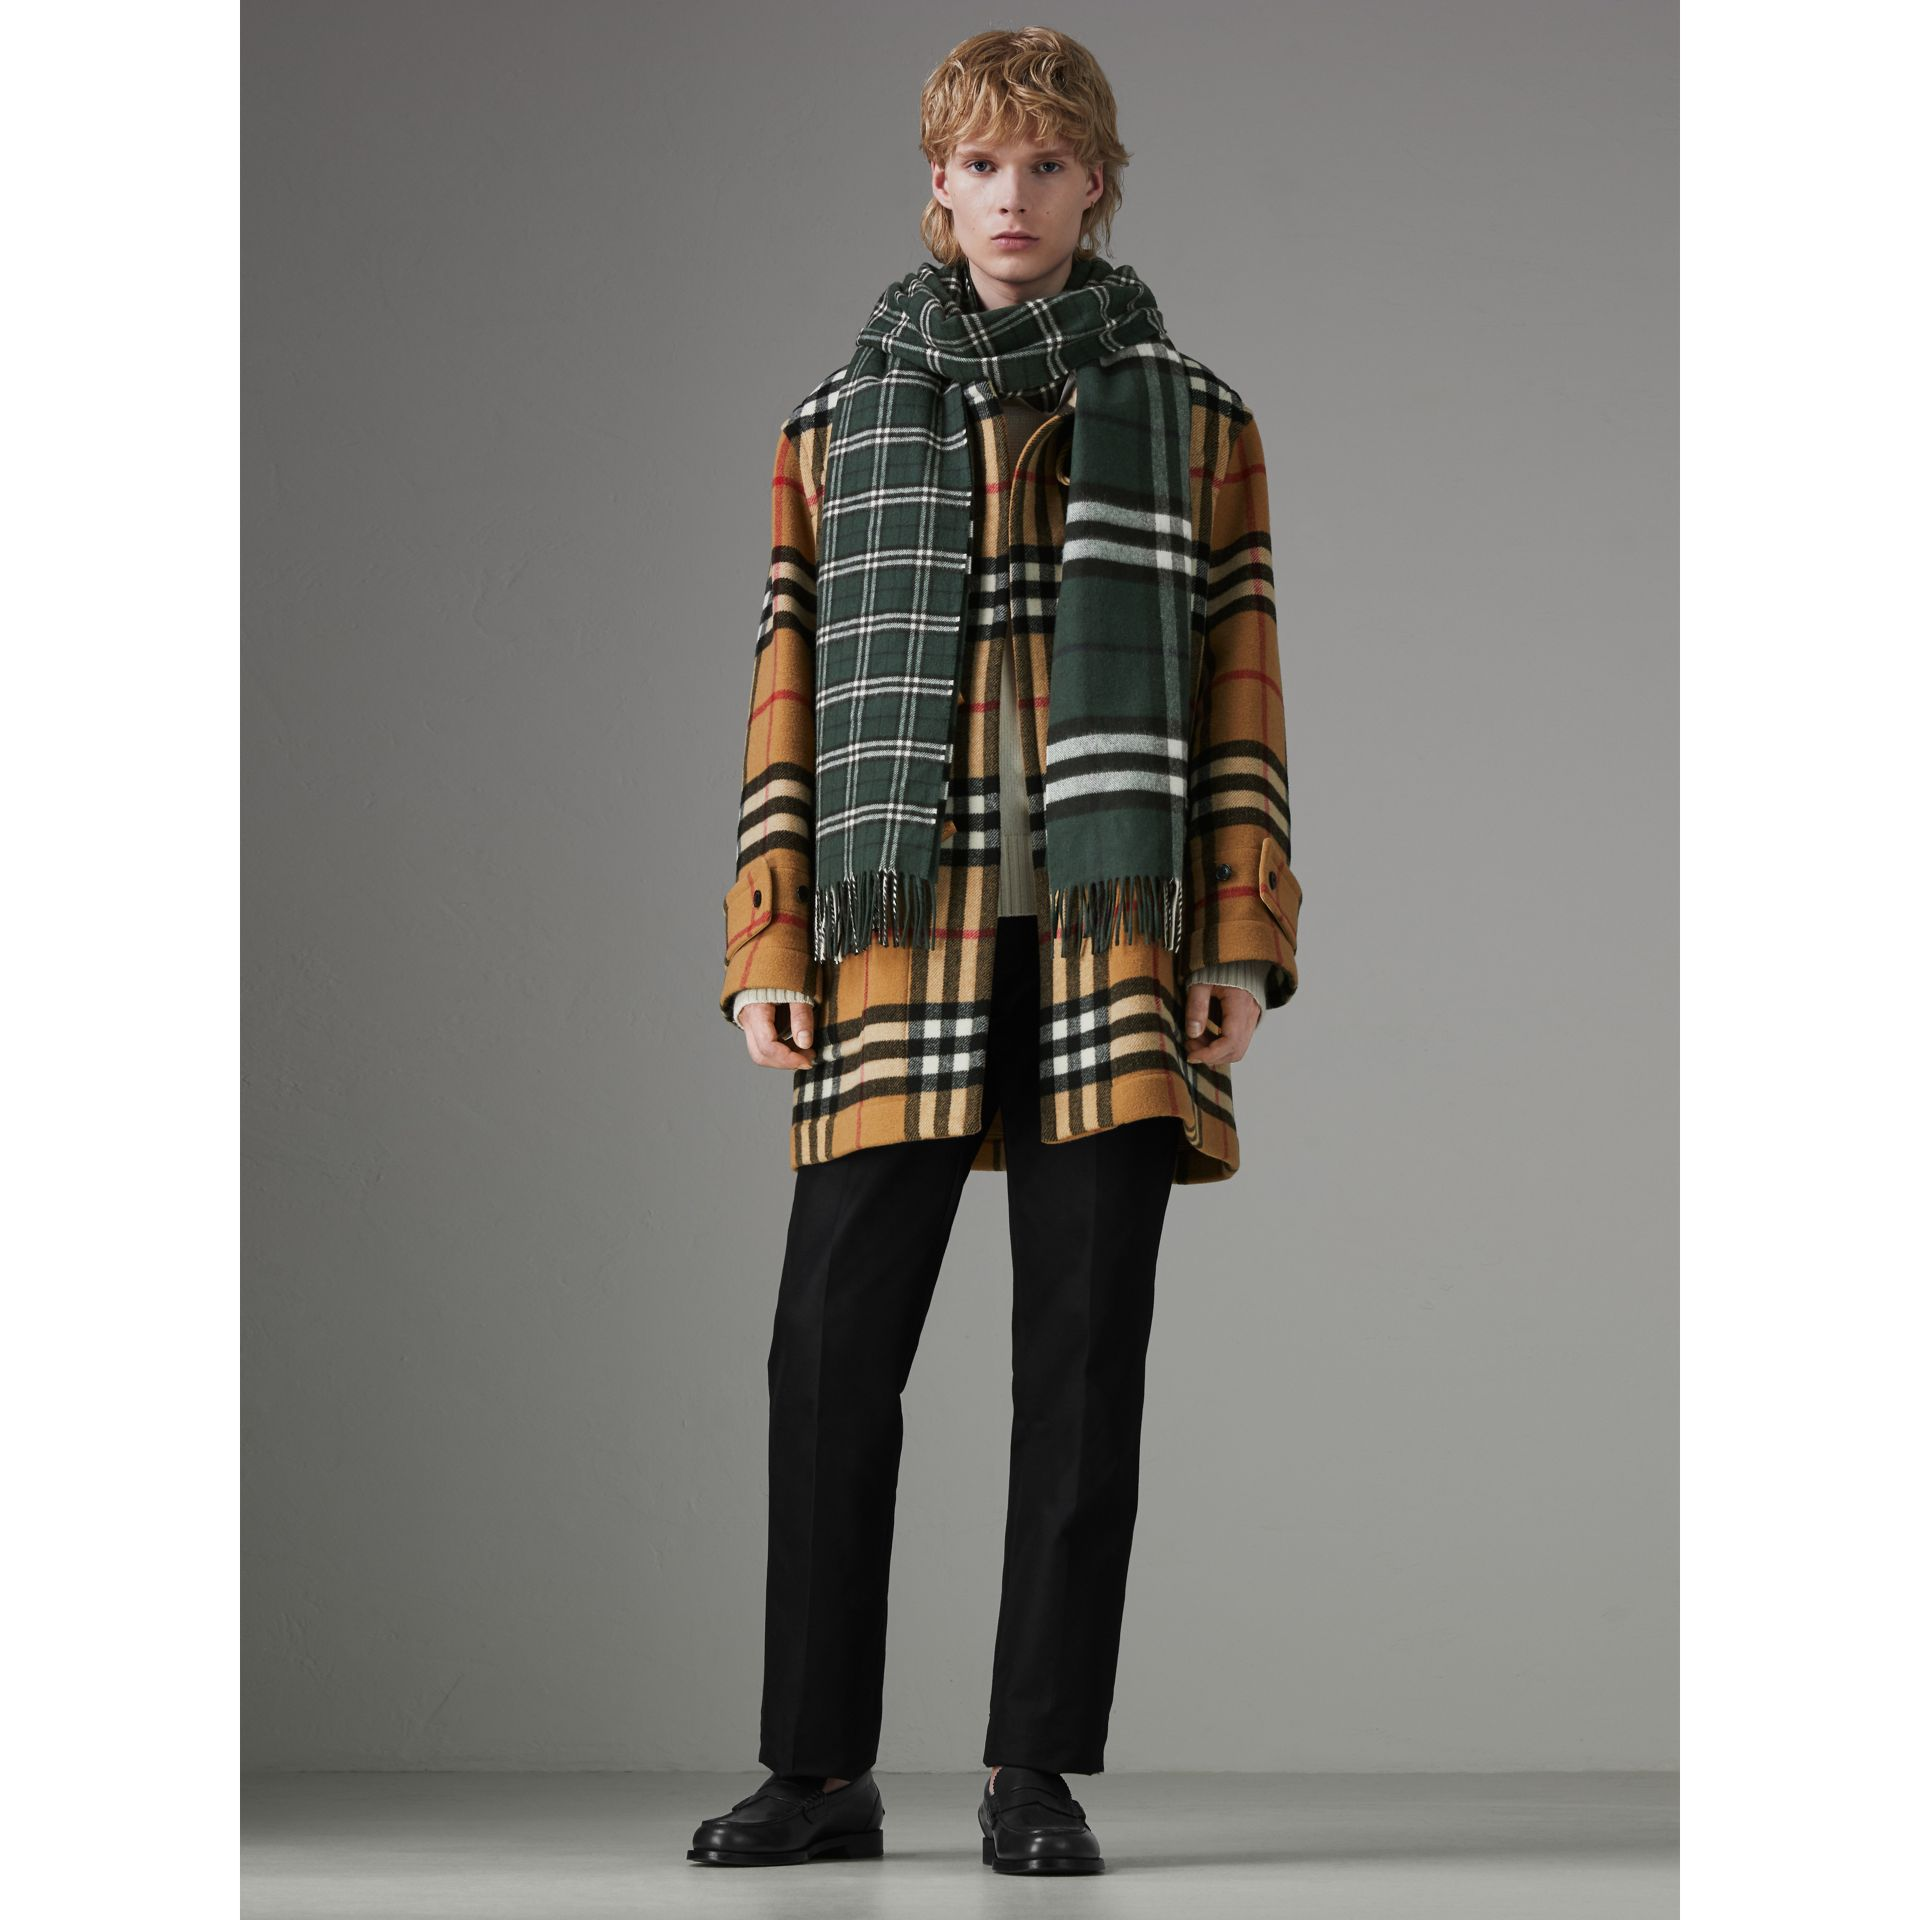 Gosha x Burberry Check Cashmere Double Scarf in Dark Forest Green | Burberry - gallery image 3